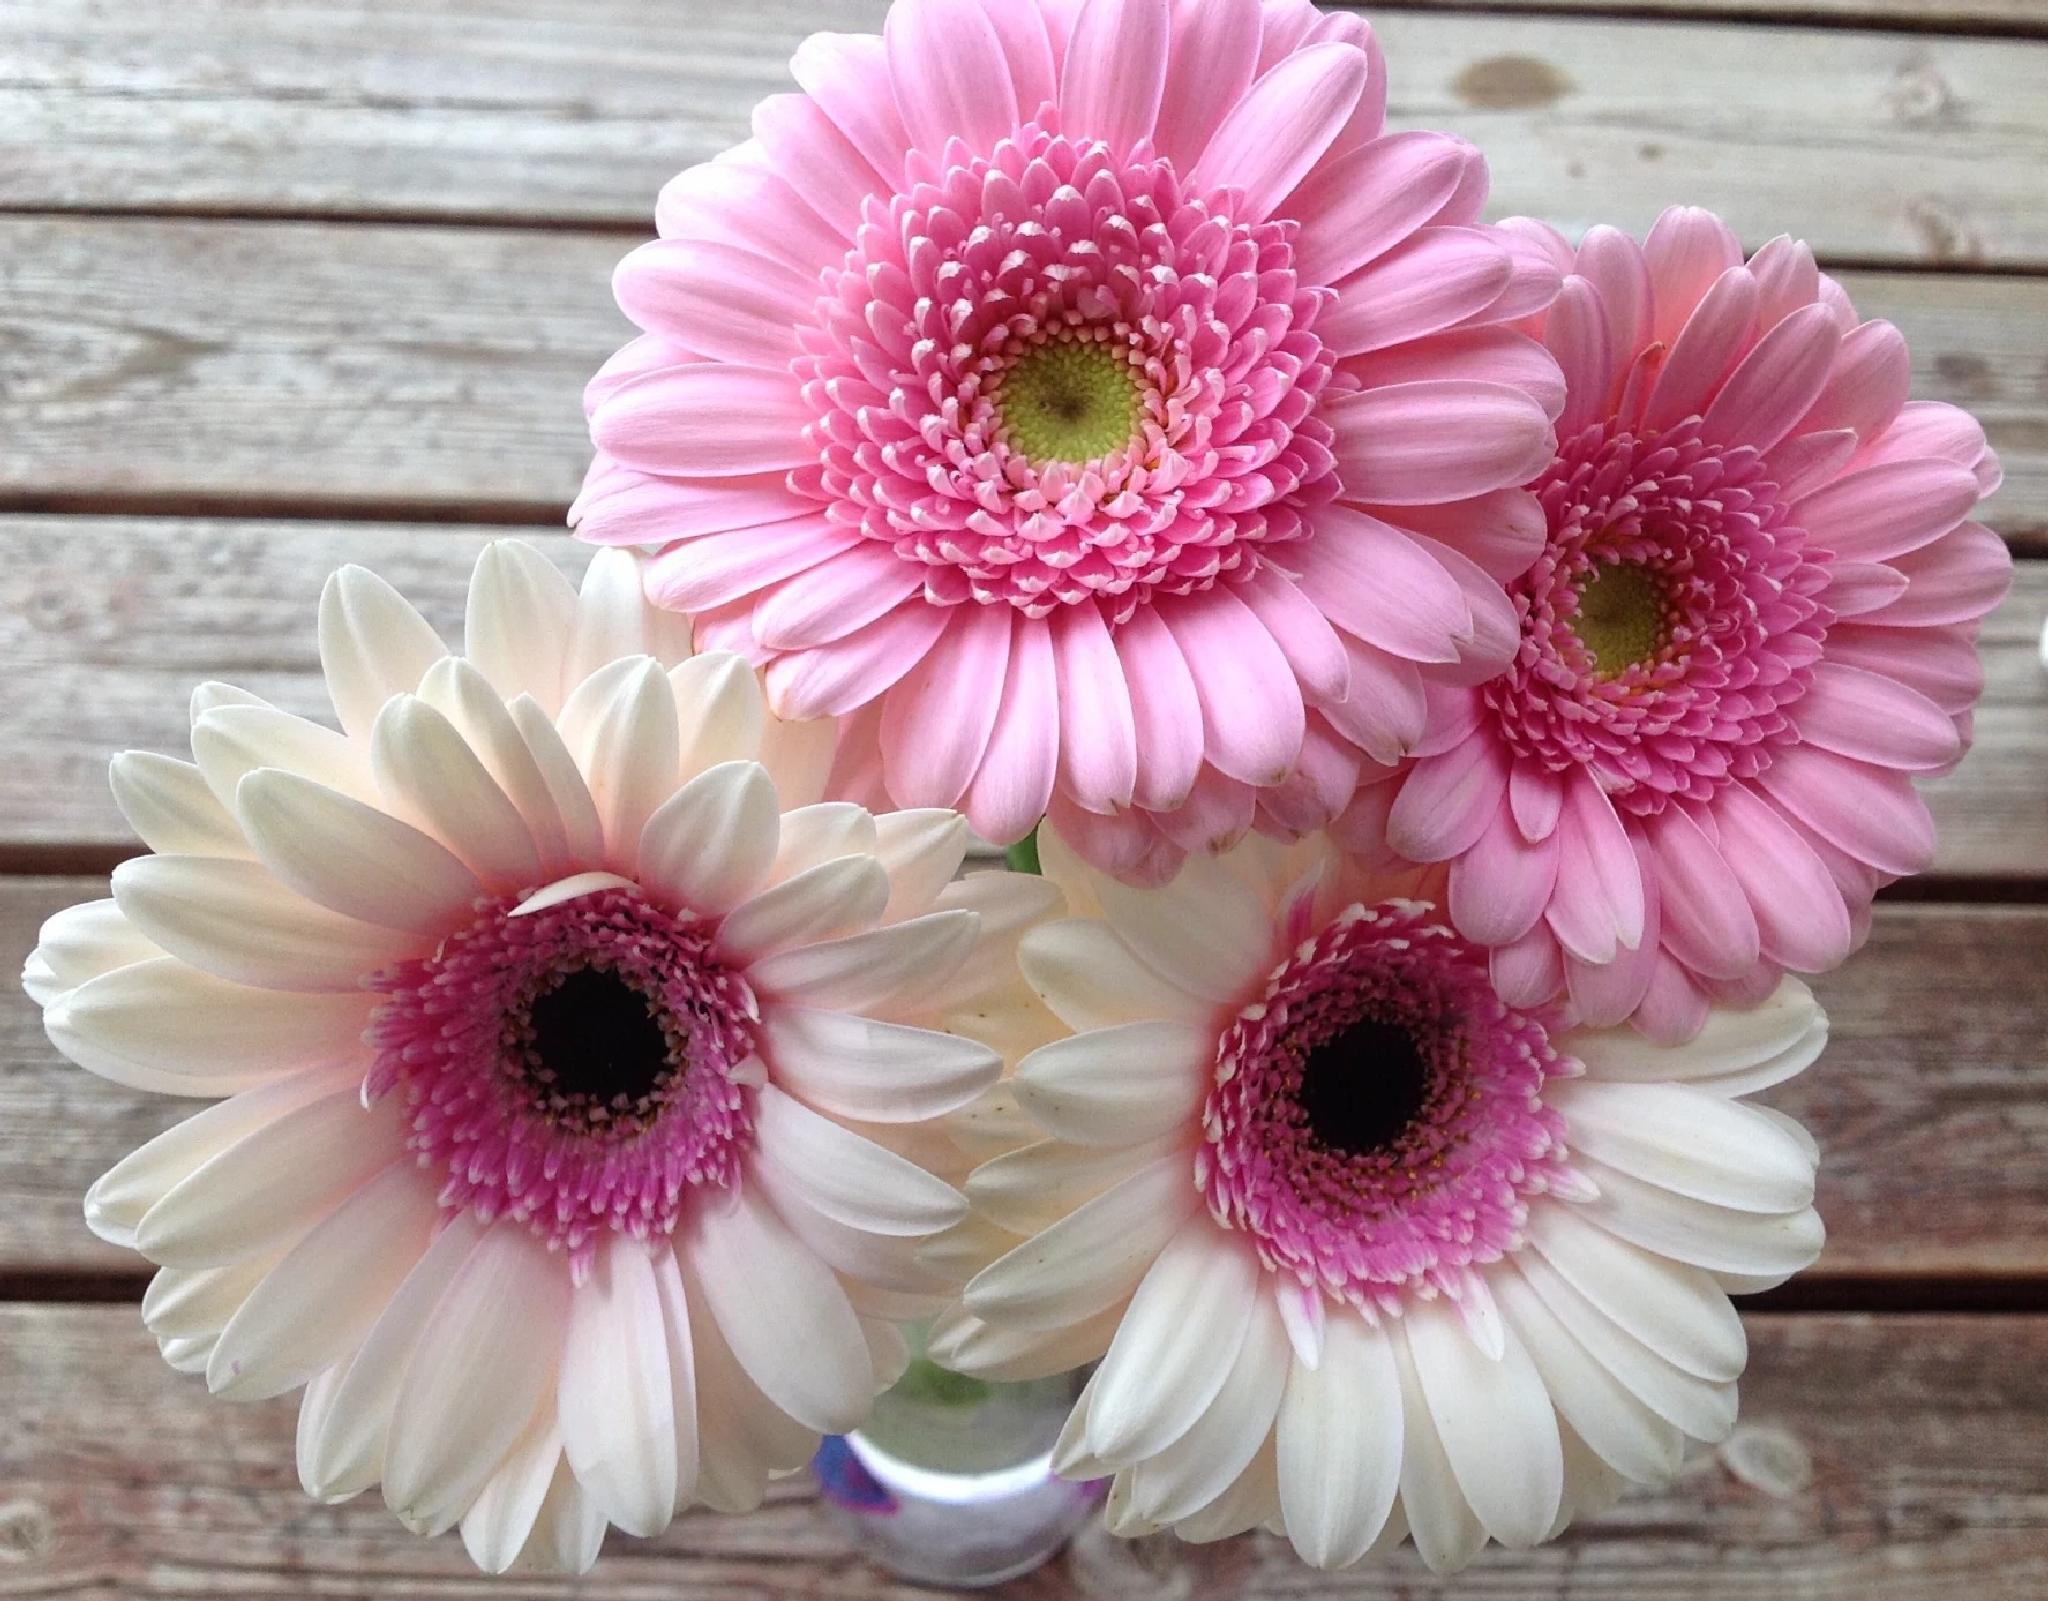 WHITE & PINK by lindaj.photogallery